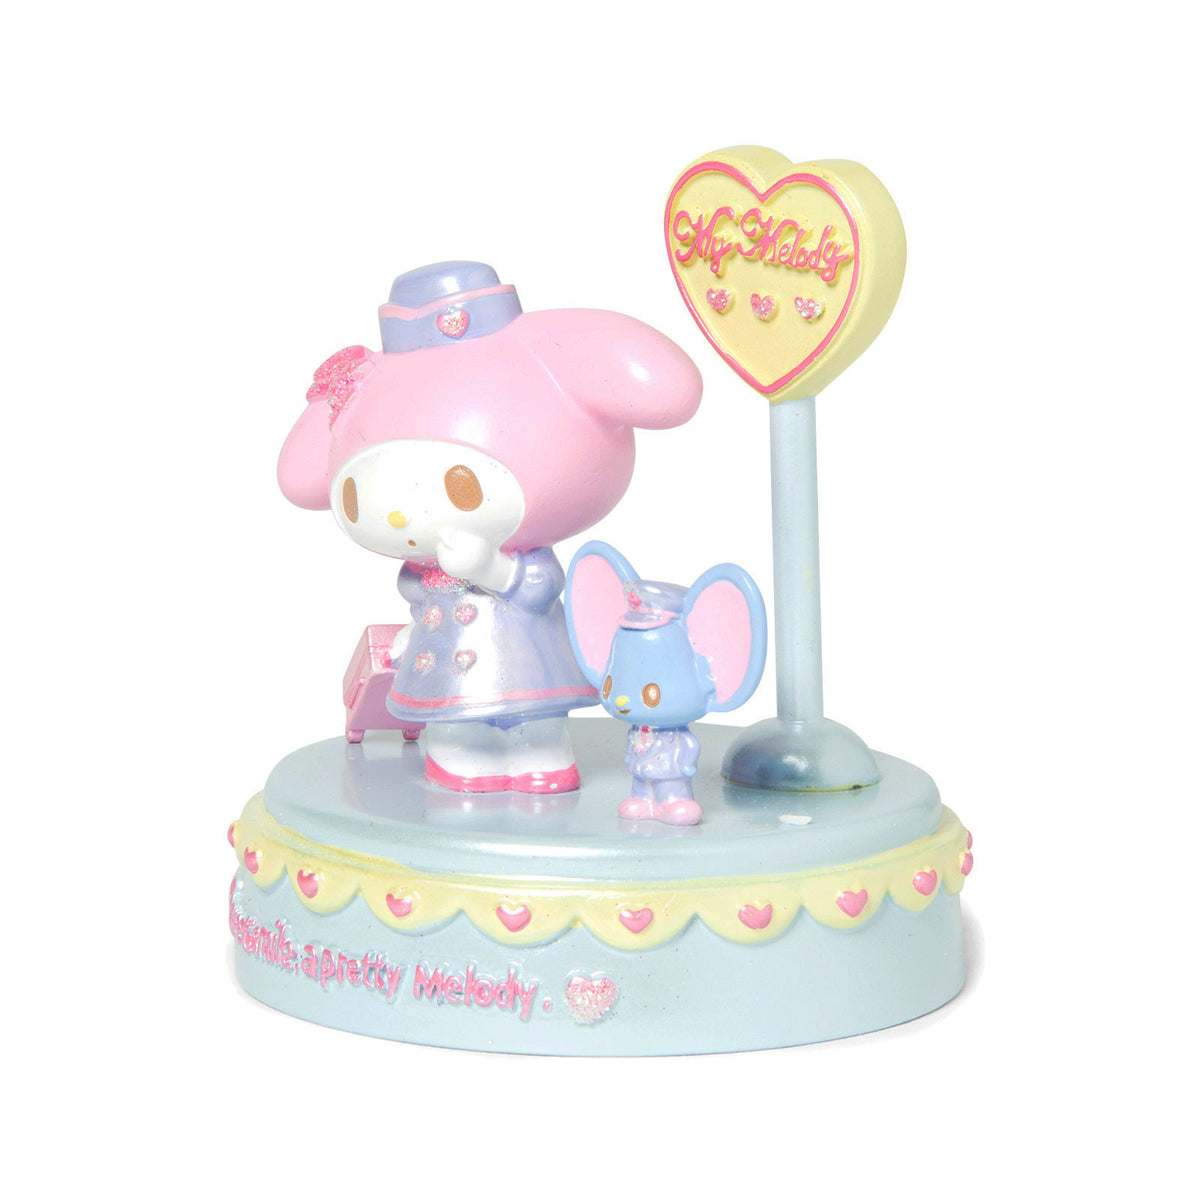 My Melody Diorama Figurine Flight Attendant